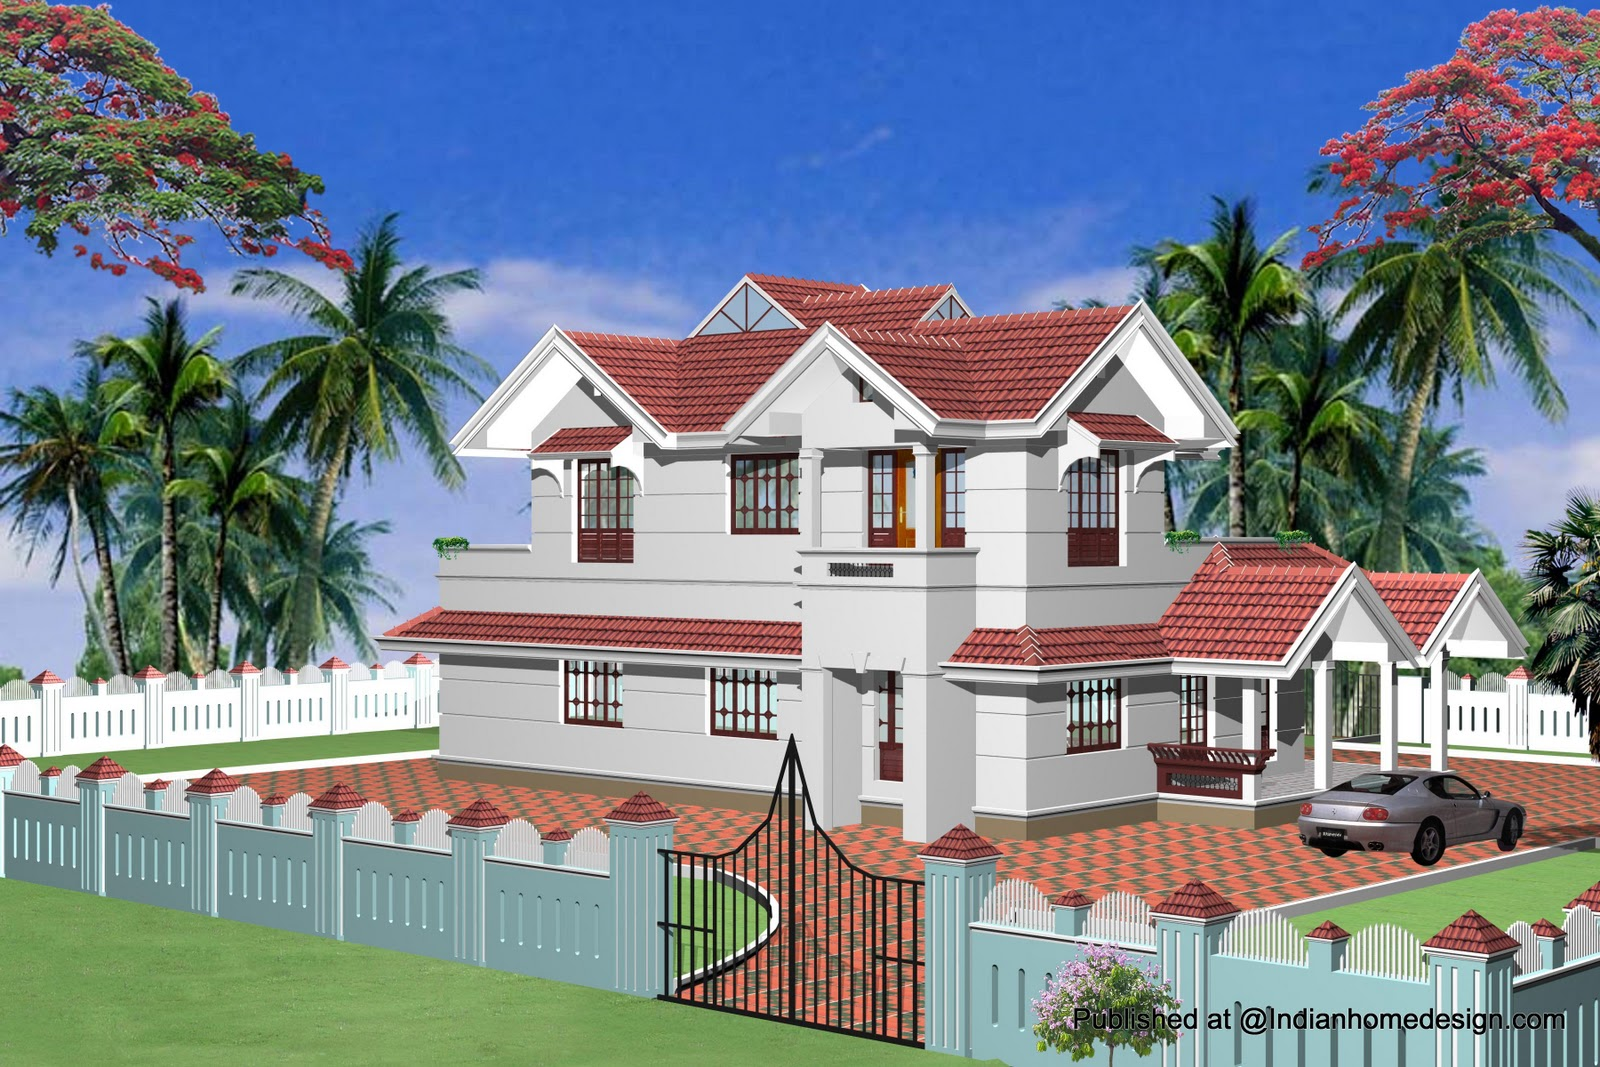 Architectural house plans india omahdesigns net for Free home designs india